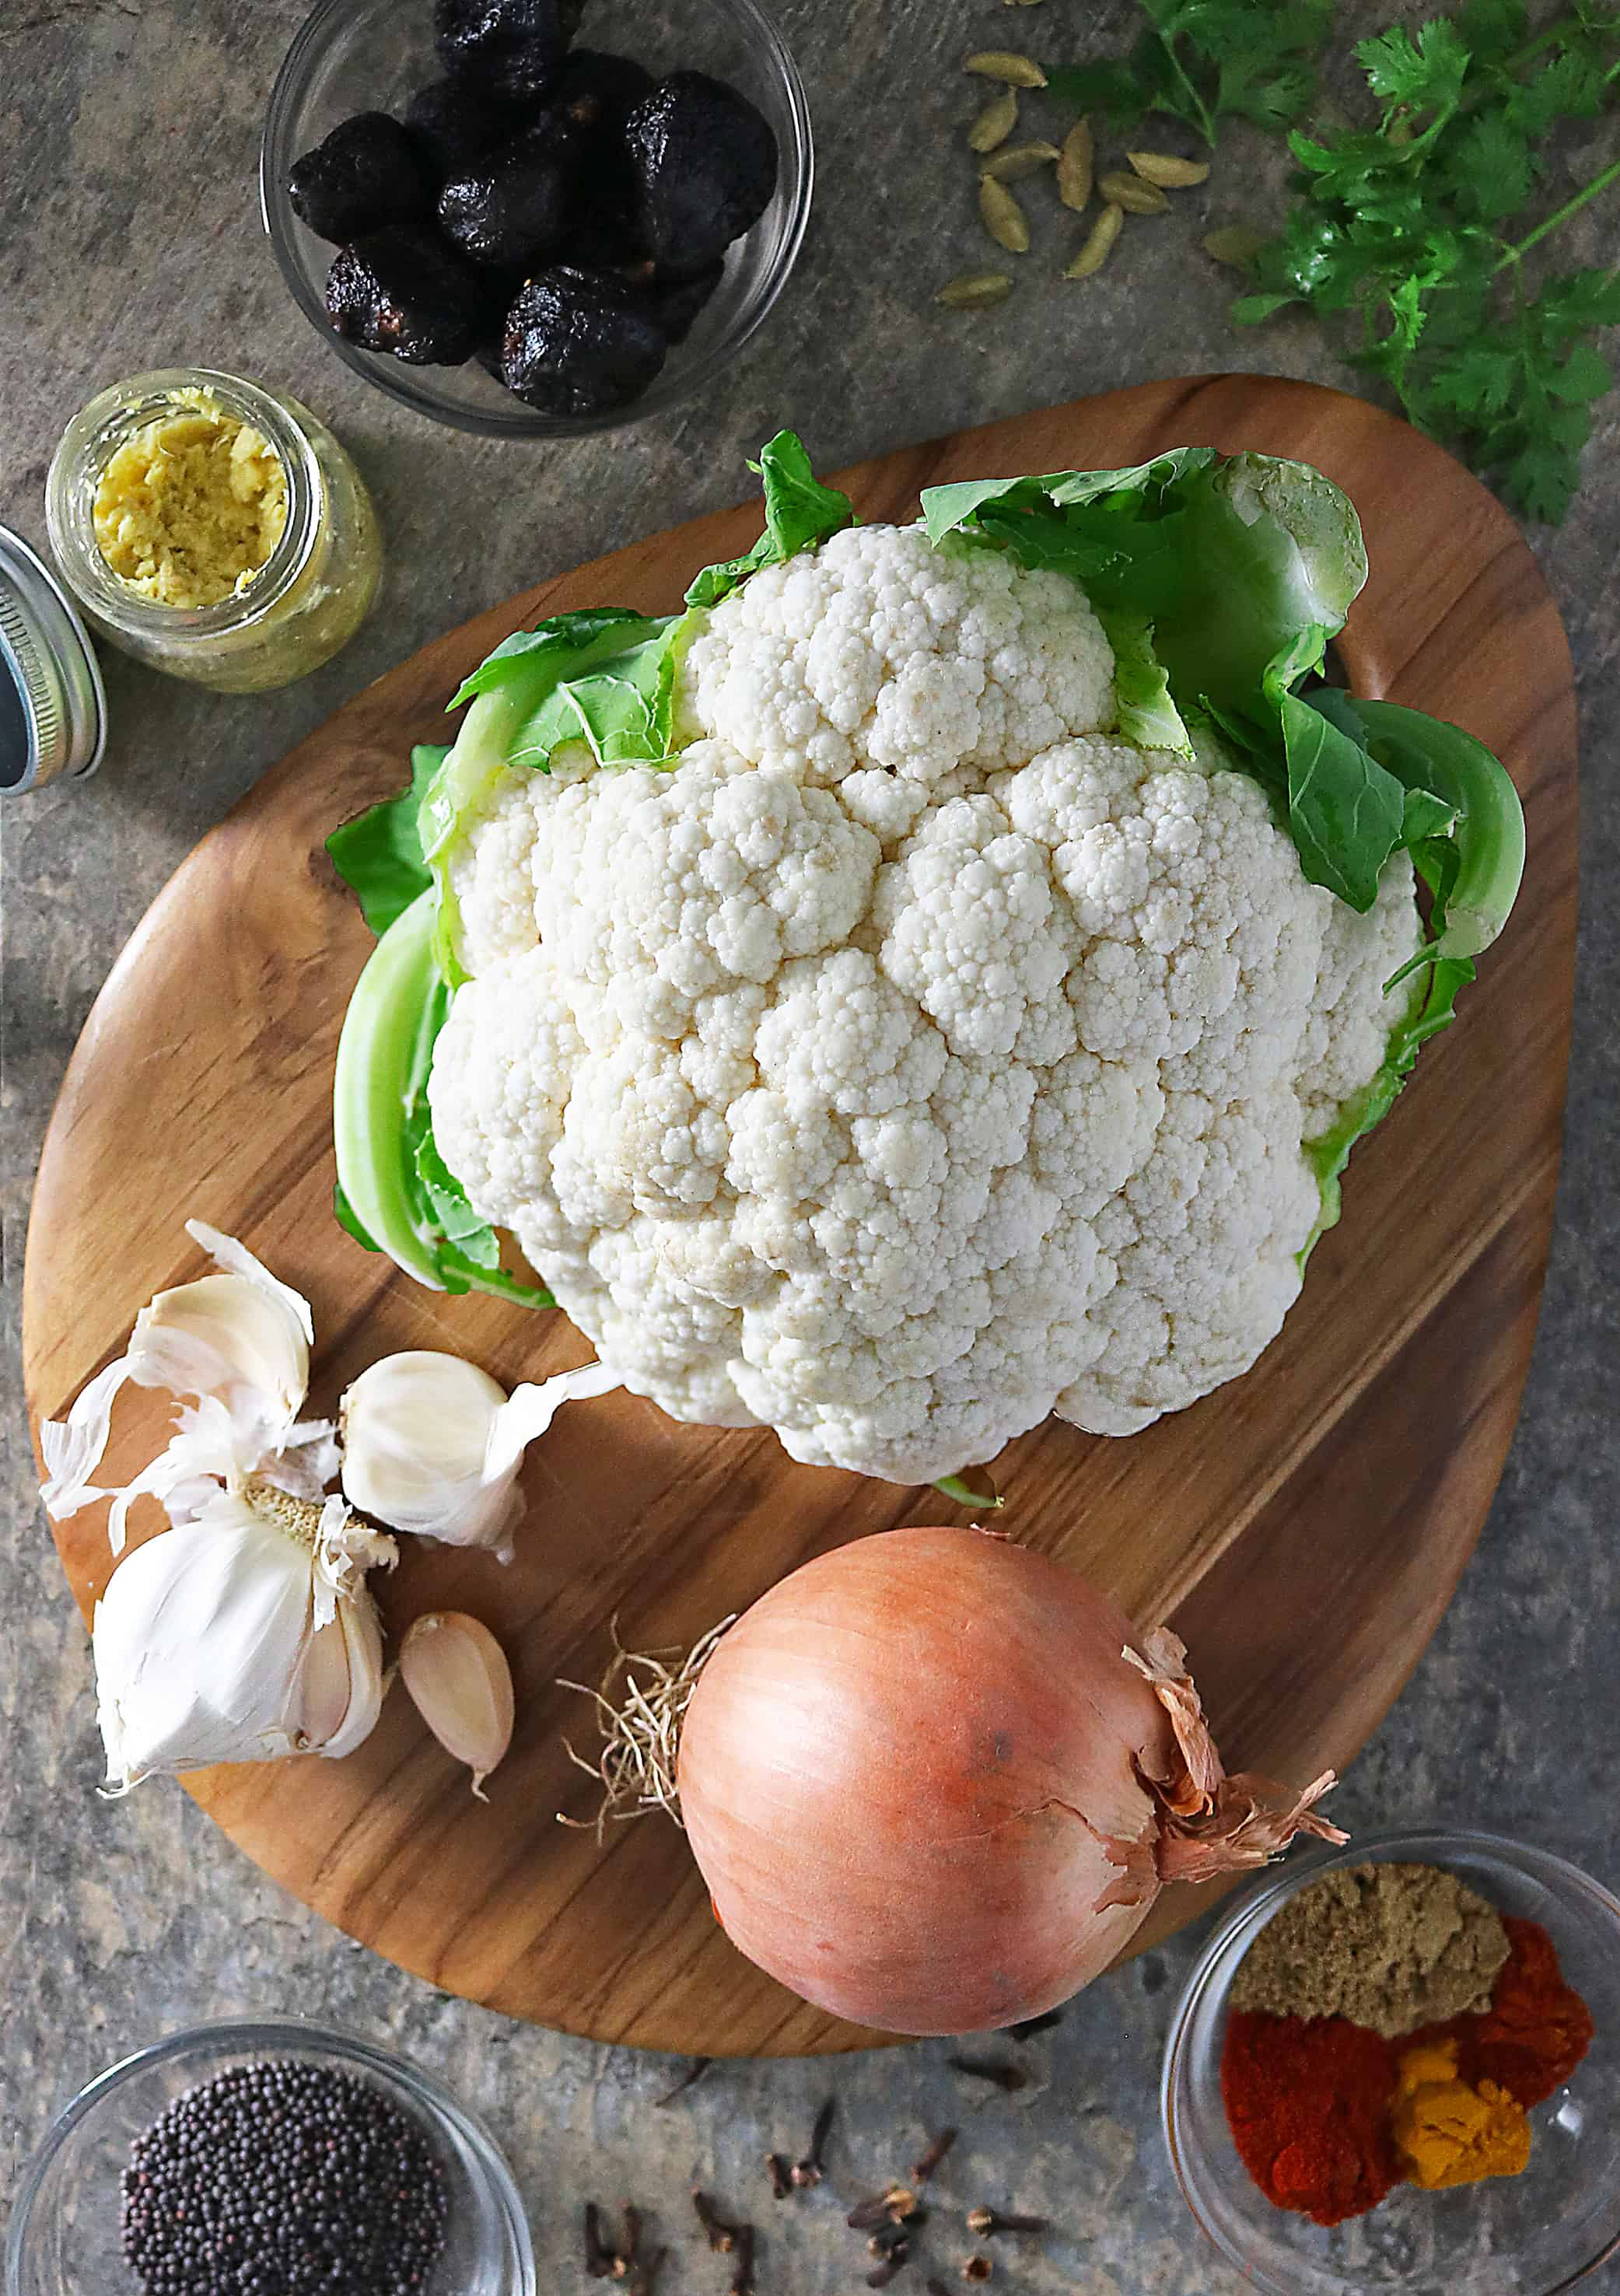 Ingredients to make Spicy Cauliflower Photo